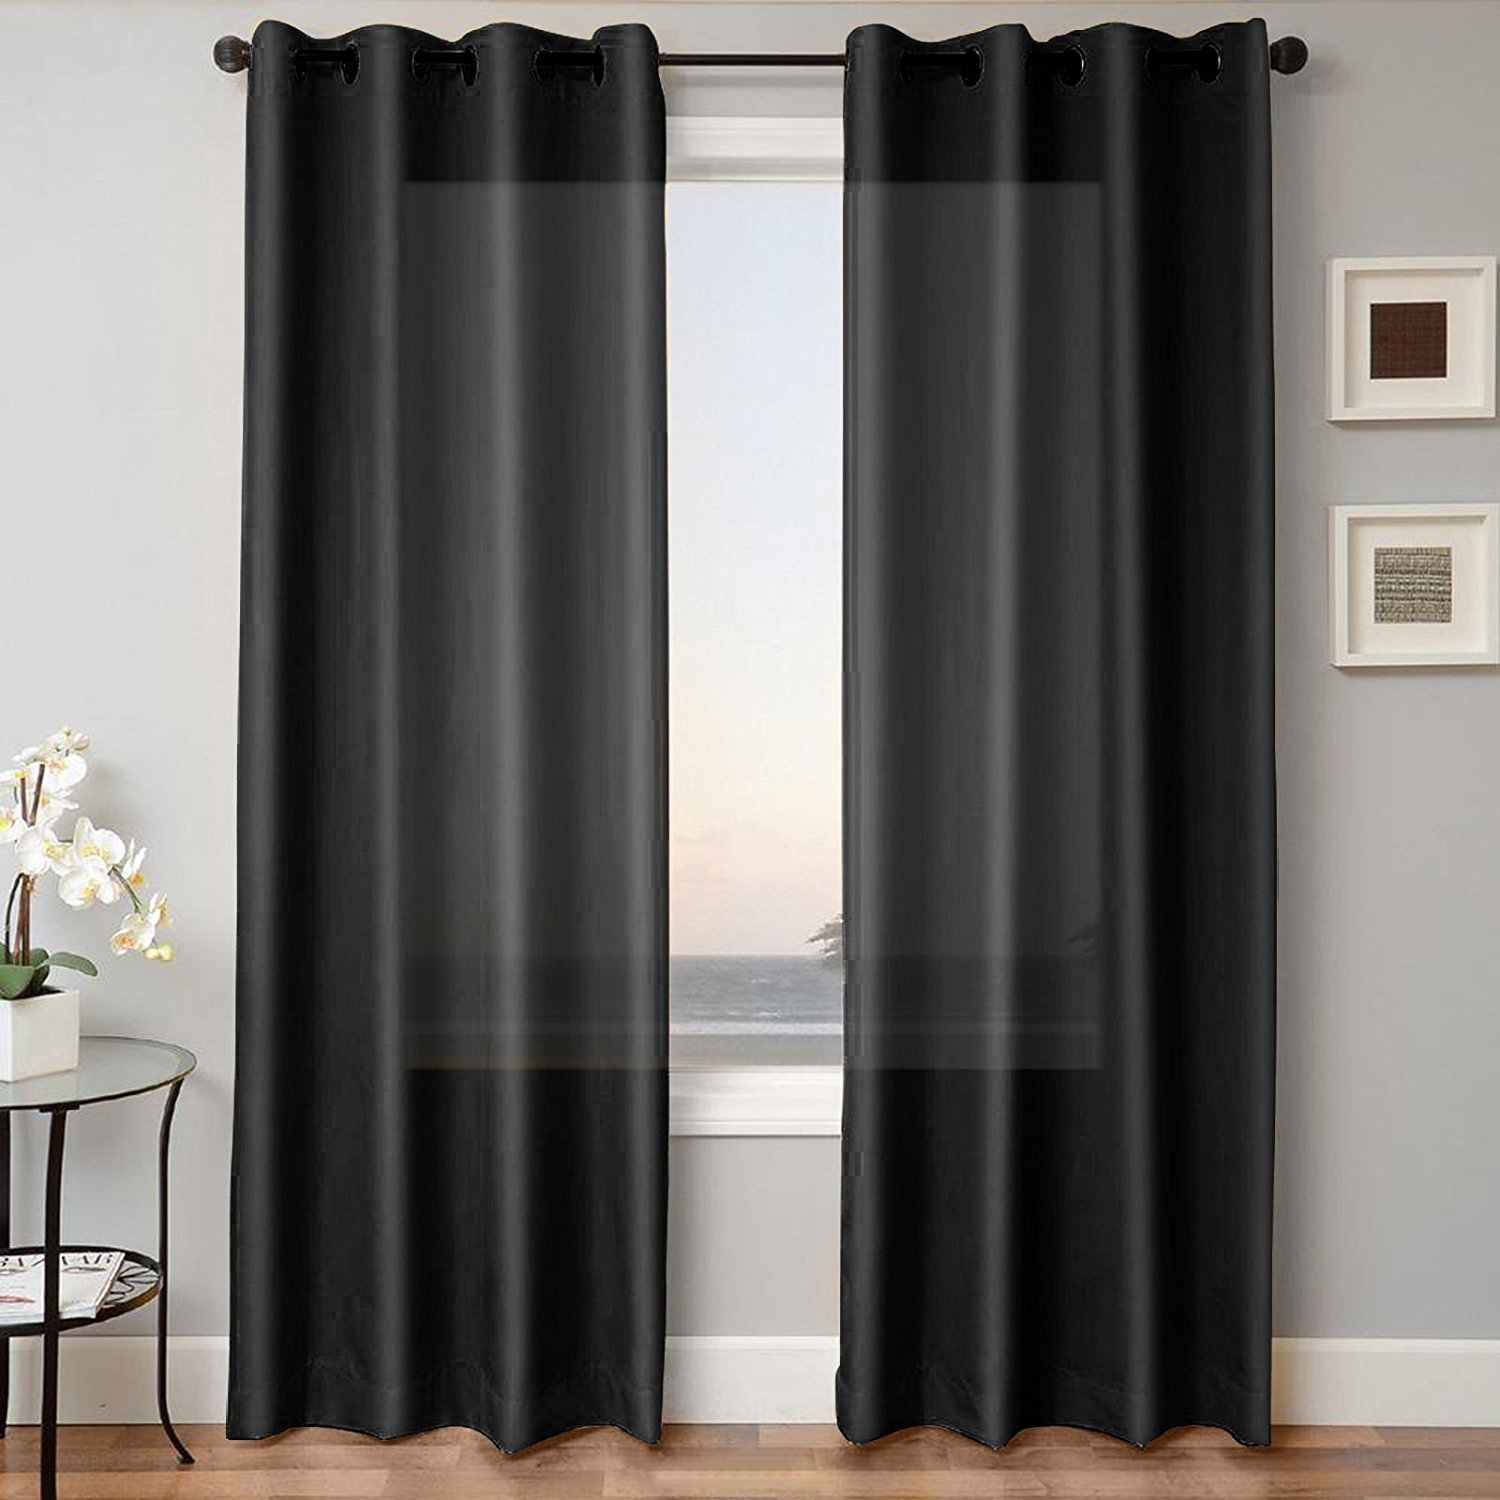 "1 PANEL MIRA  SOLID BLACK SEMI SHEER WINDOW FAUX SILK ANTIQUE BRONZE GROMMETS CURTAIN DRAPES 55 WIDE X 63"" LENGTH"